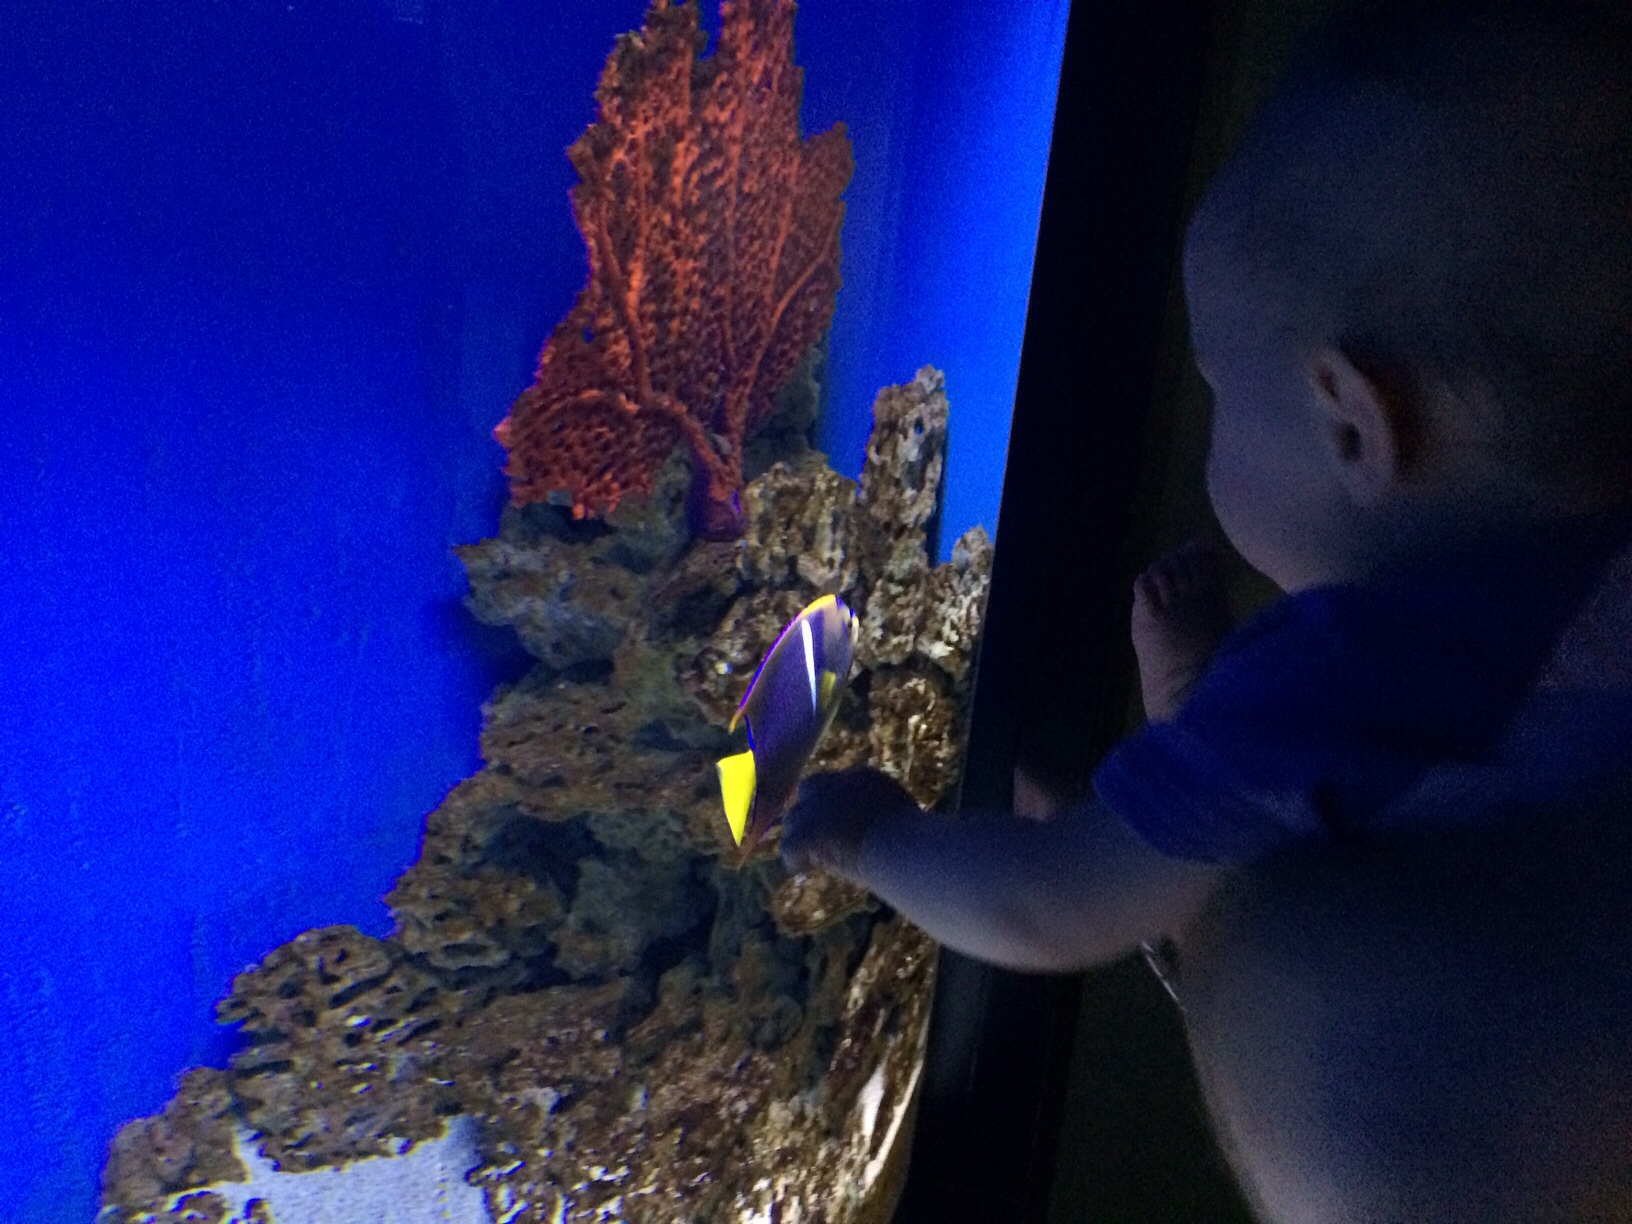 Baby boy o looking at fish